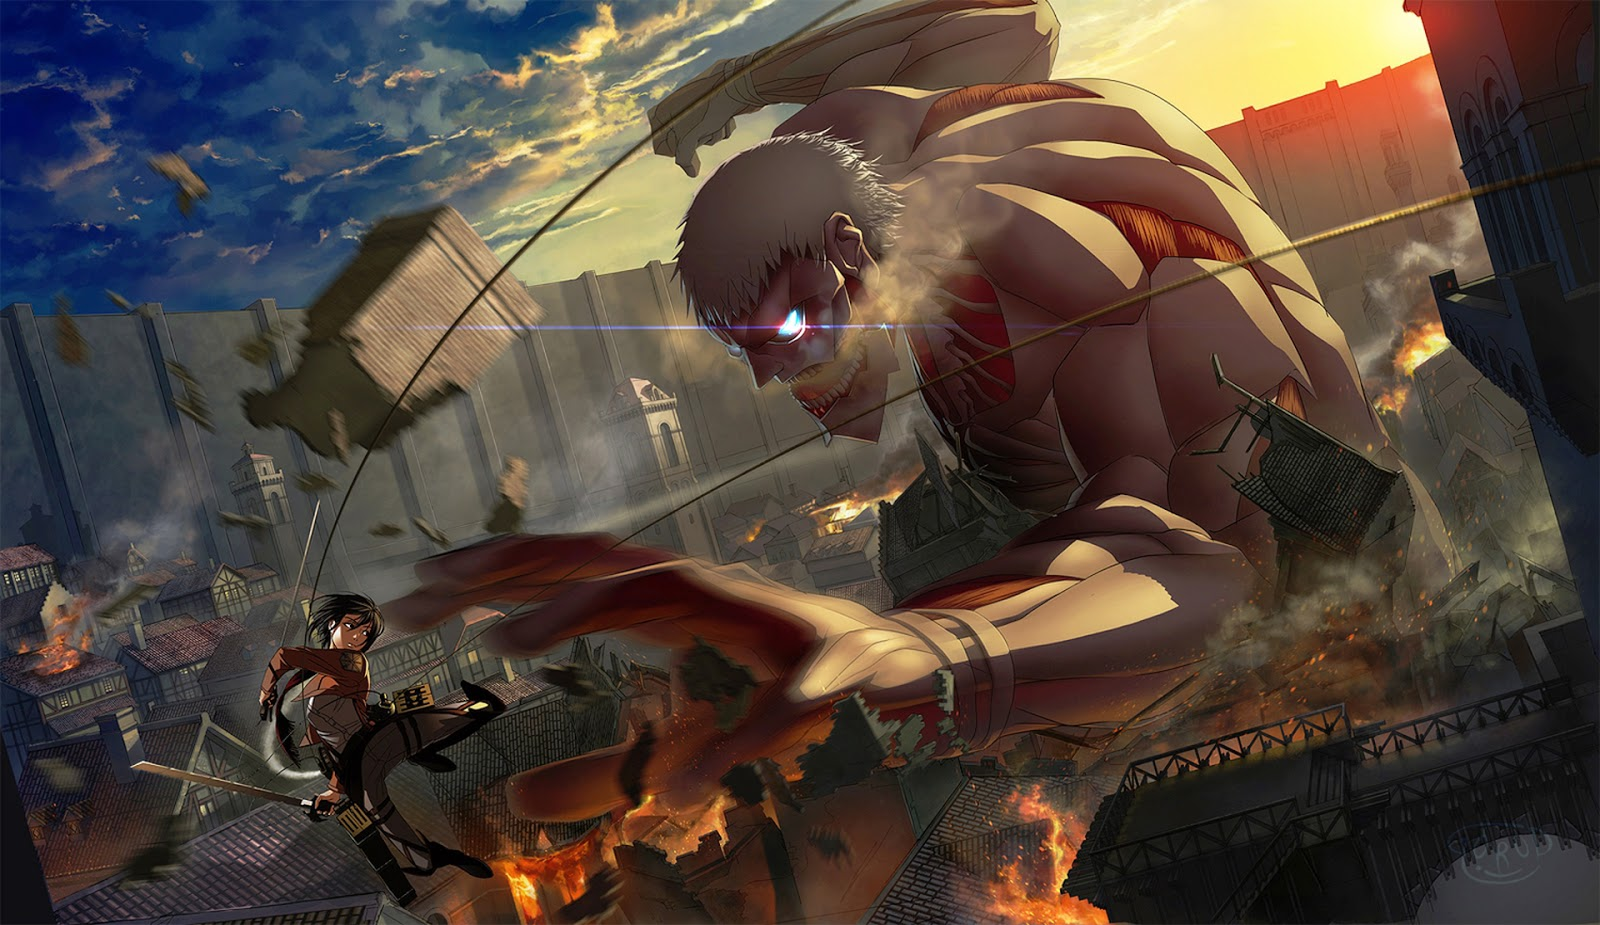 AOT-Wallpapers-shingeki-no-kyojin-attack